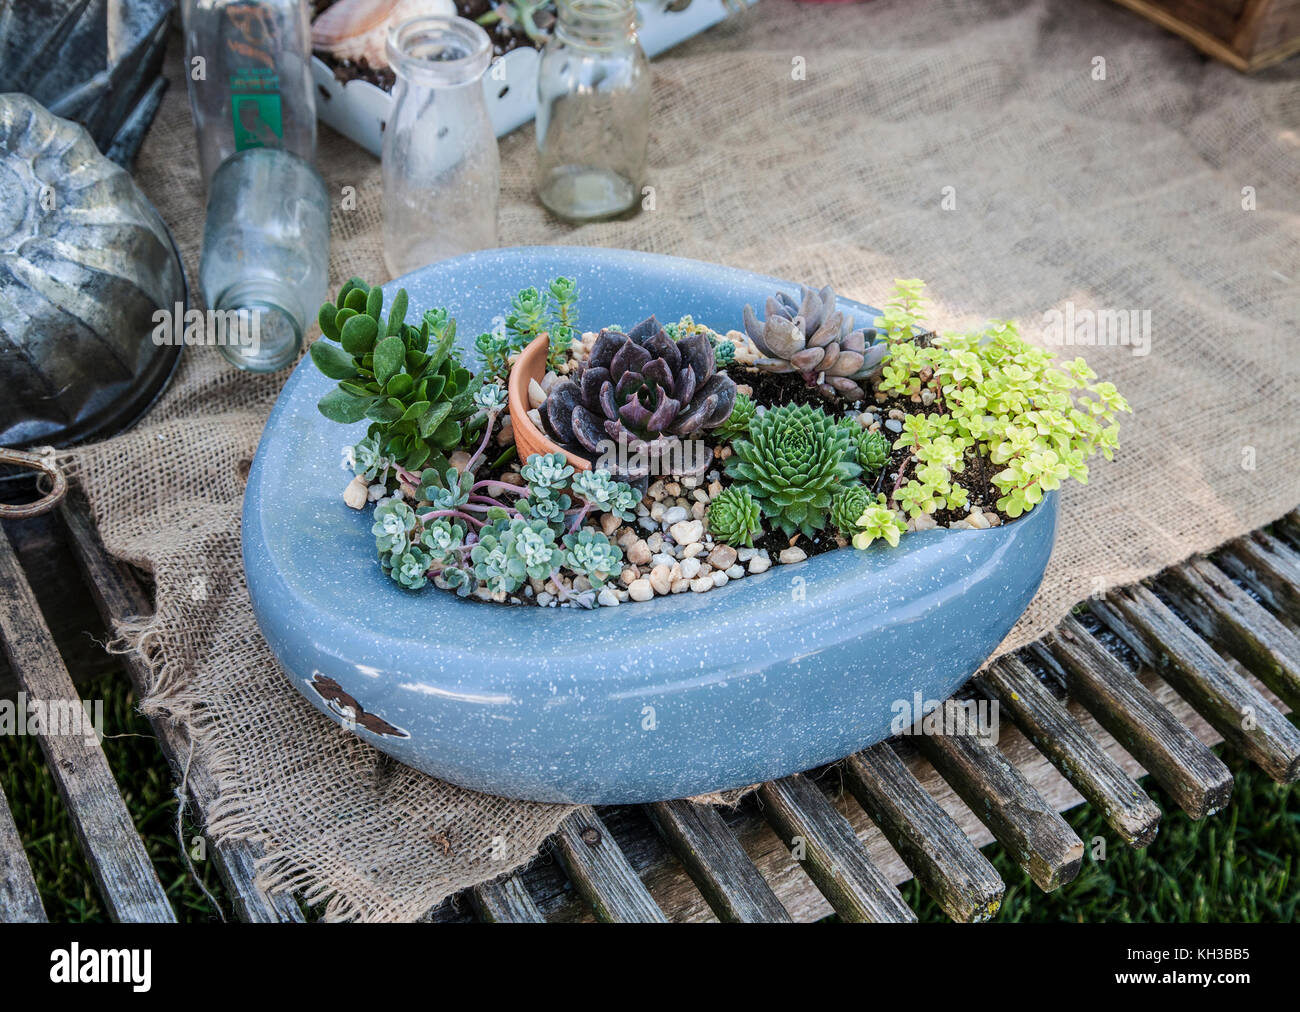 Repurposed garden humour planter pot bedpan, toilet with succulents on an Amish farm, Lanncaster County, Pennsylvania, - Stock Image